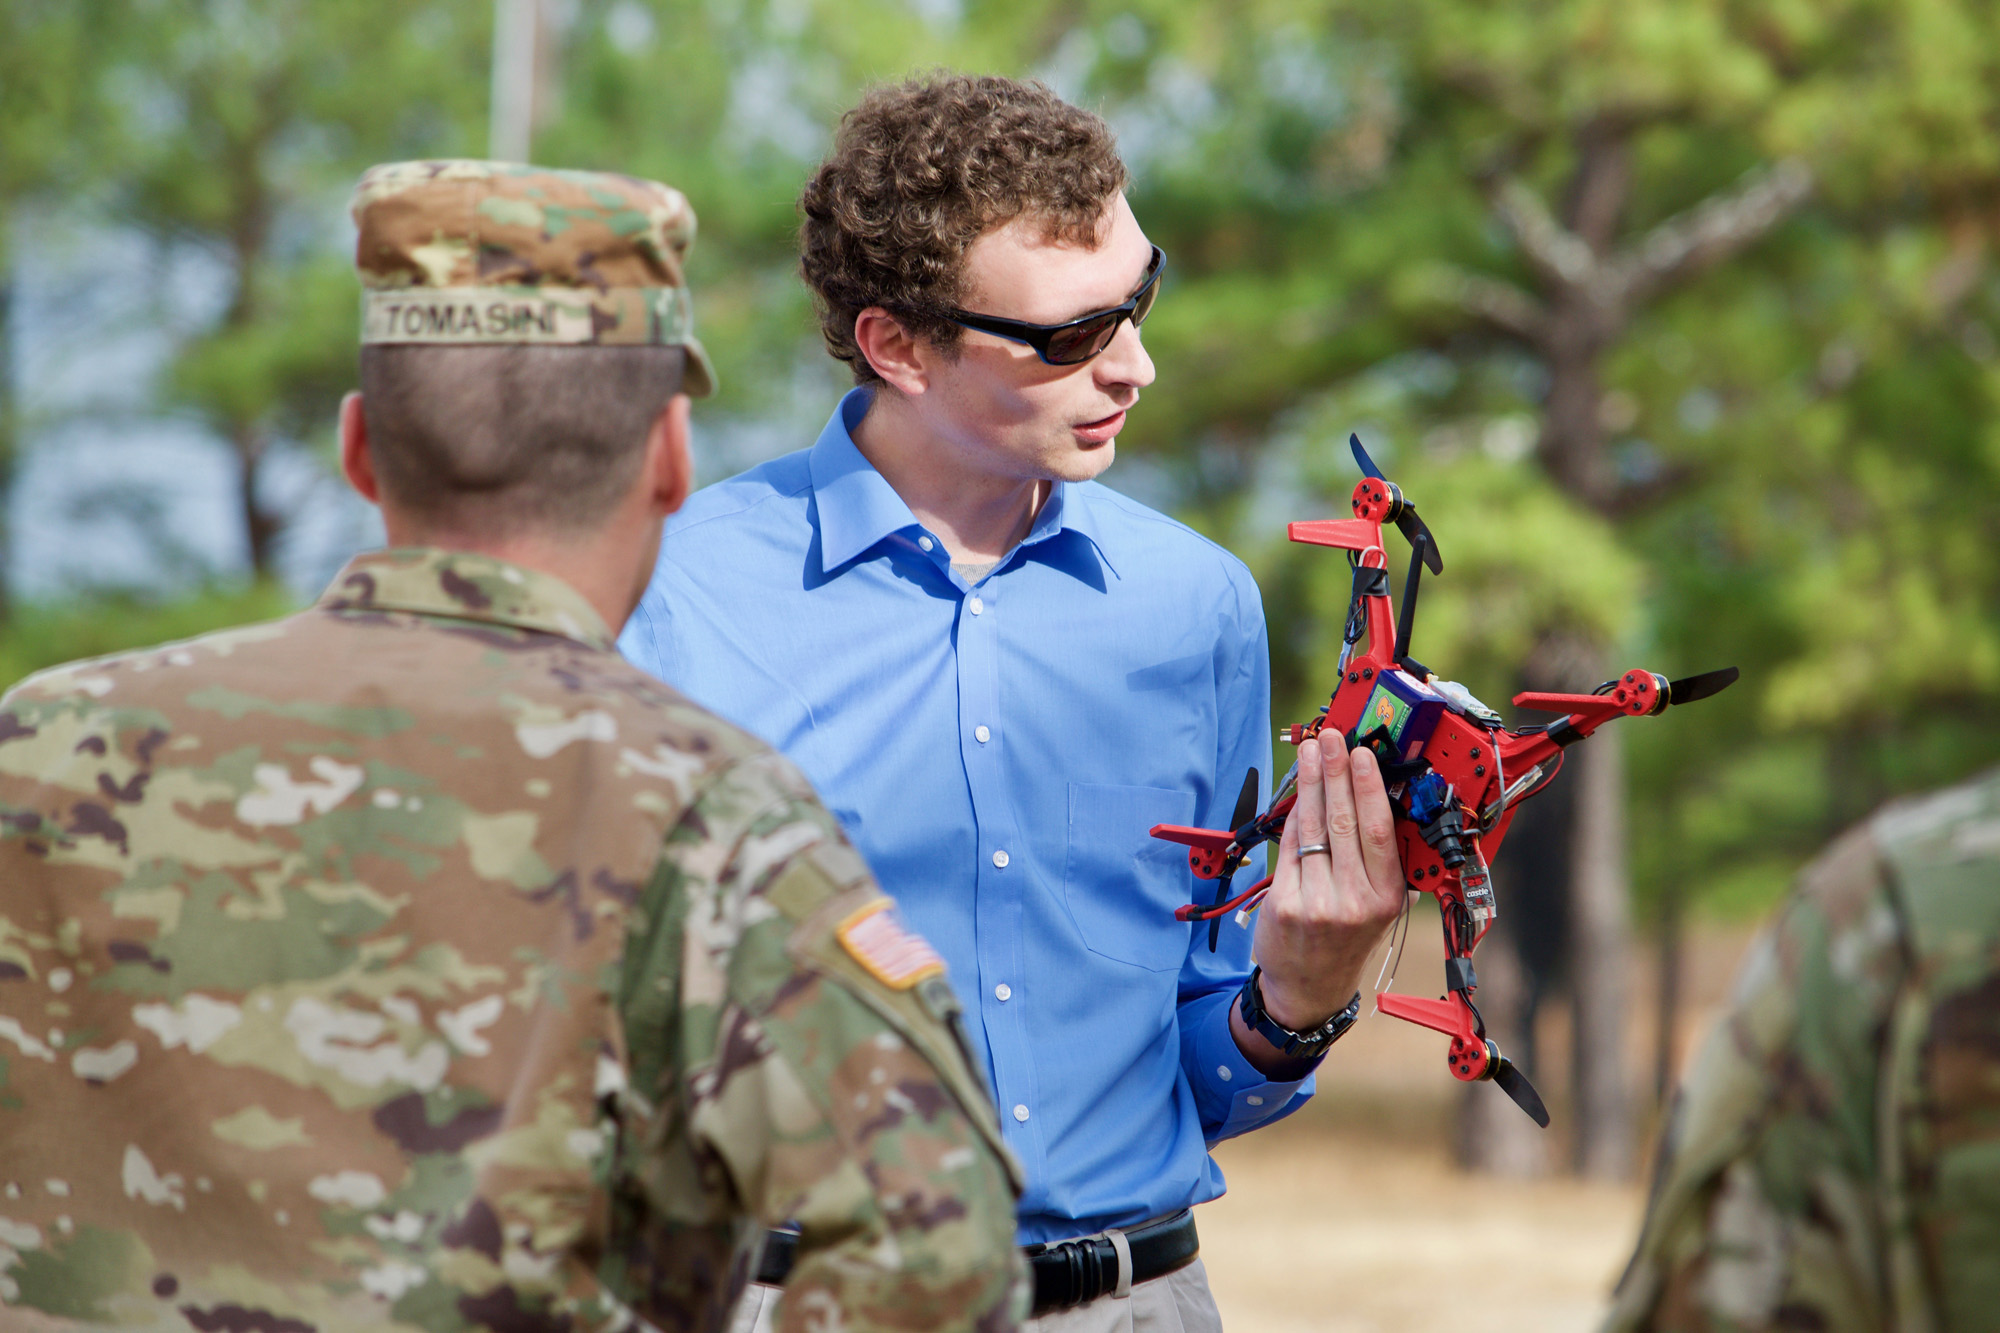 John Gerdes, an engineer with the U.S. Army Research Laboratory, explains the capabilities of the On-Demand Small Unmanned Aircraft System, or ODSUAS, to Soldiers at the Army Expeditionary Warrior Experiments, or AEWE, at Fort Benning, Georgia, Dec. 1, 2016. (U.S. Army photo by Angie DePuydt)